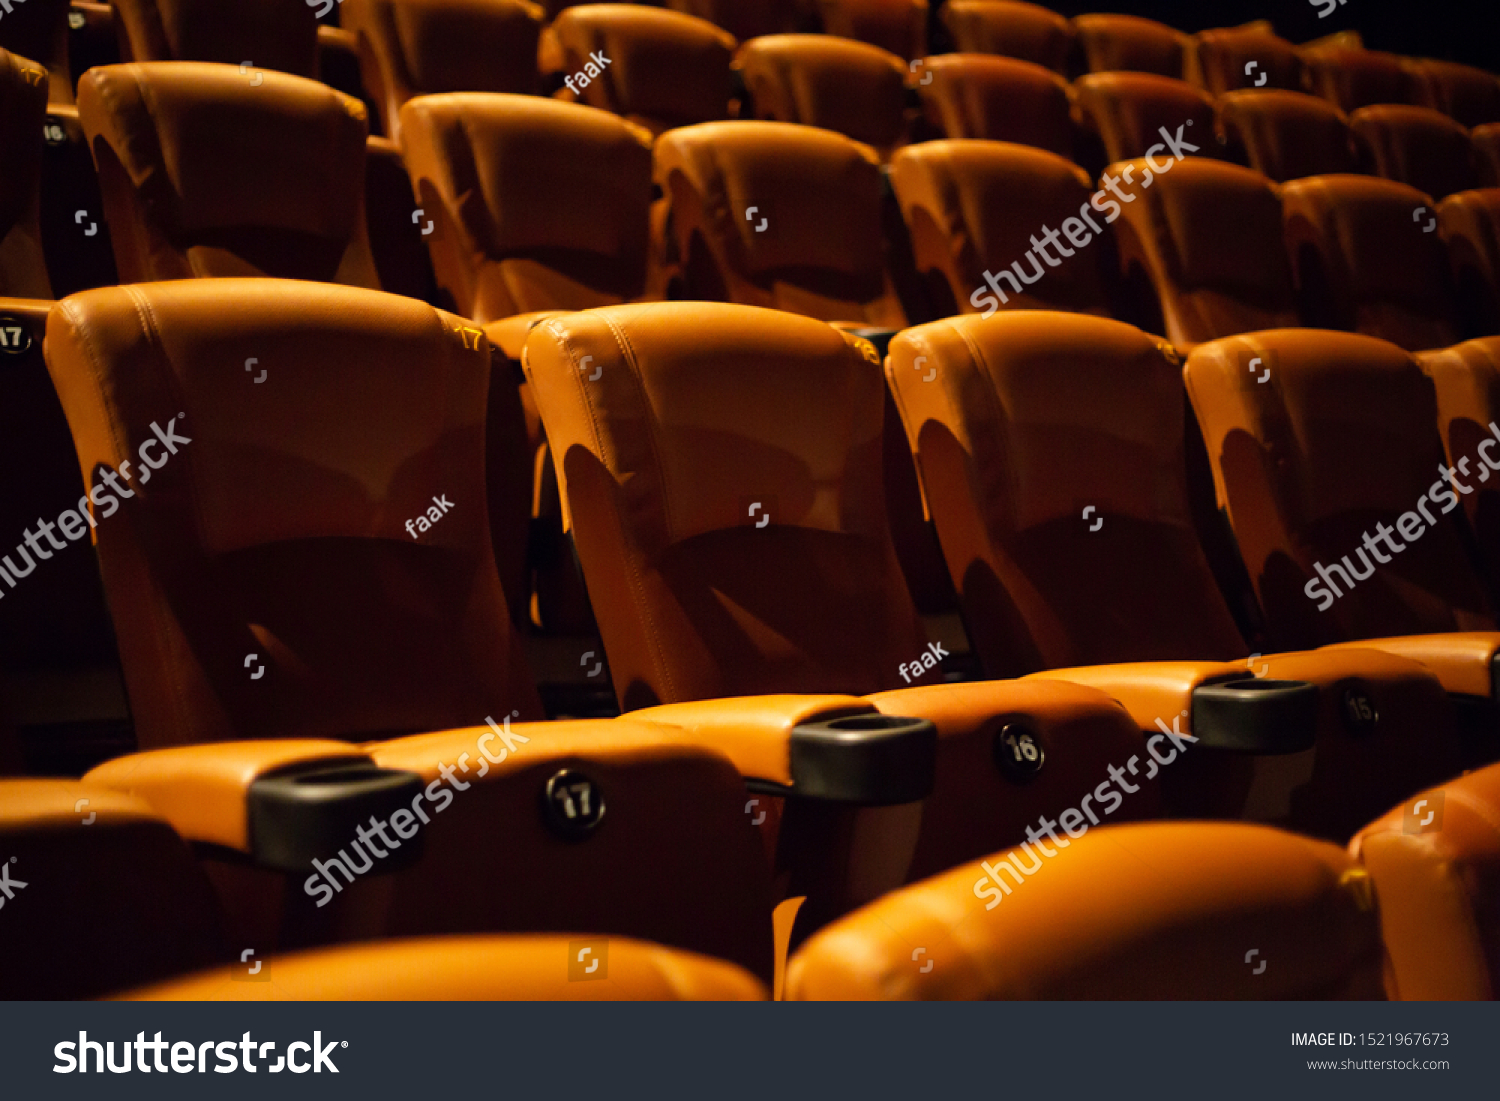 brown special leather seat in movie theater. pattern of many armchairs in dark room . #1521967673